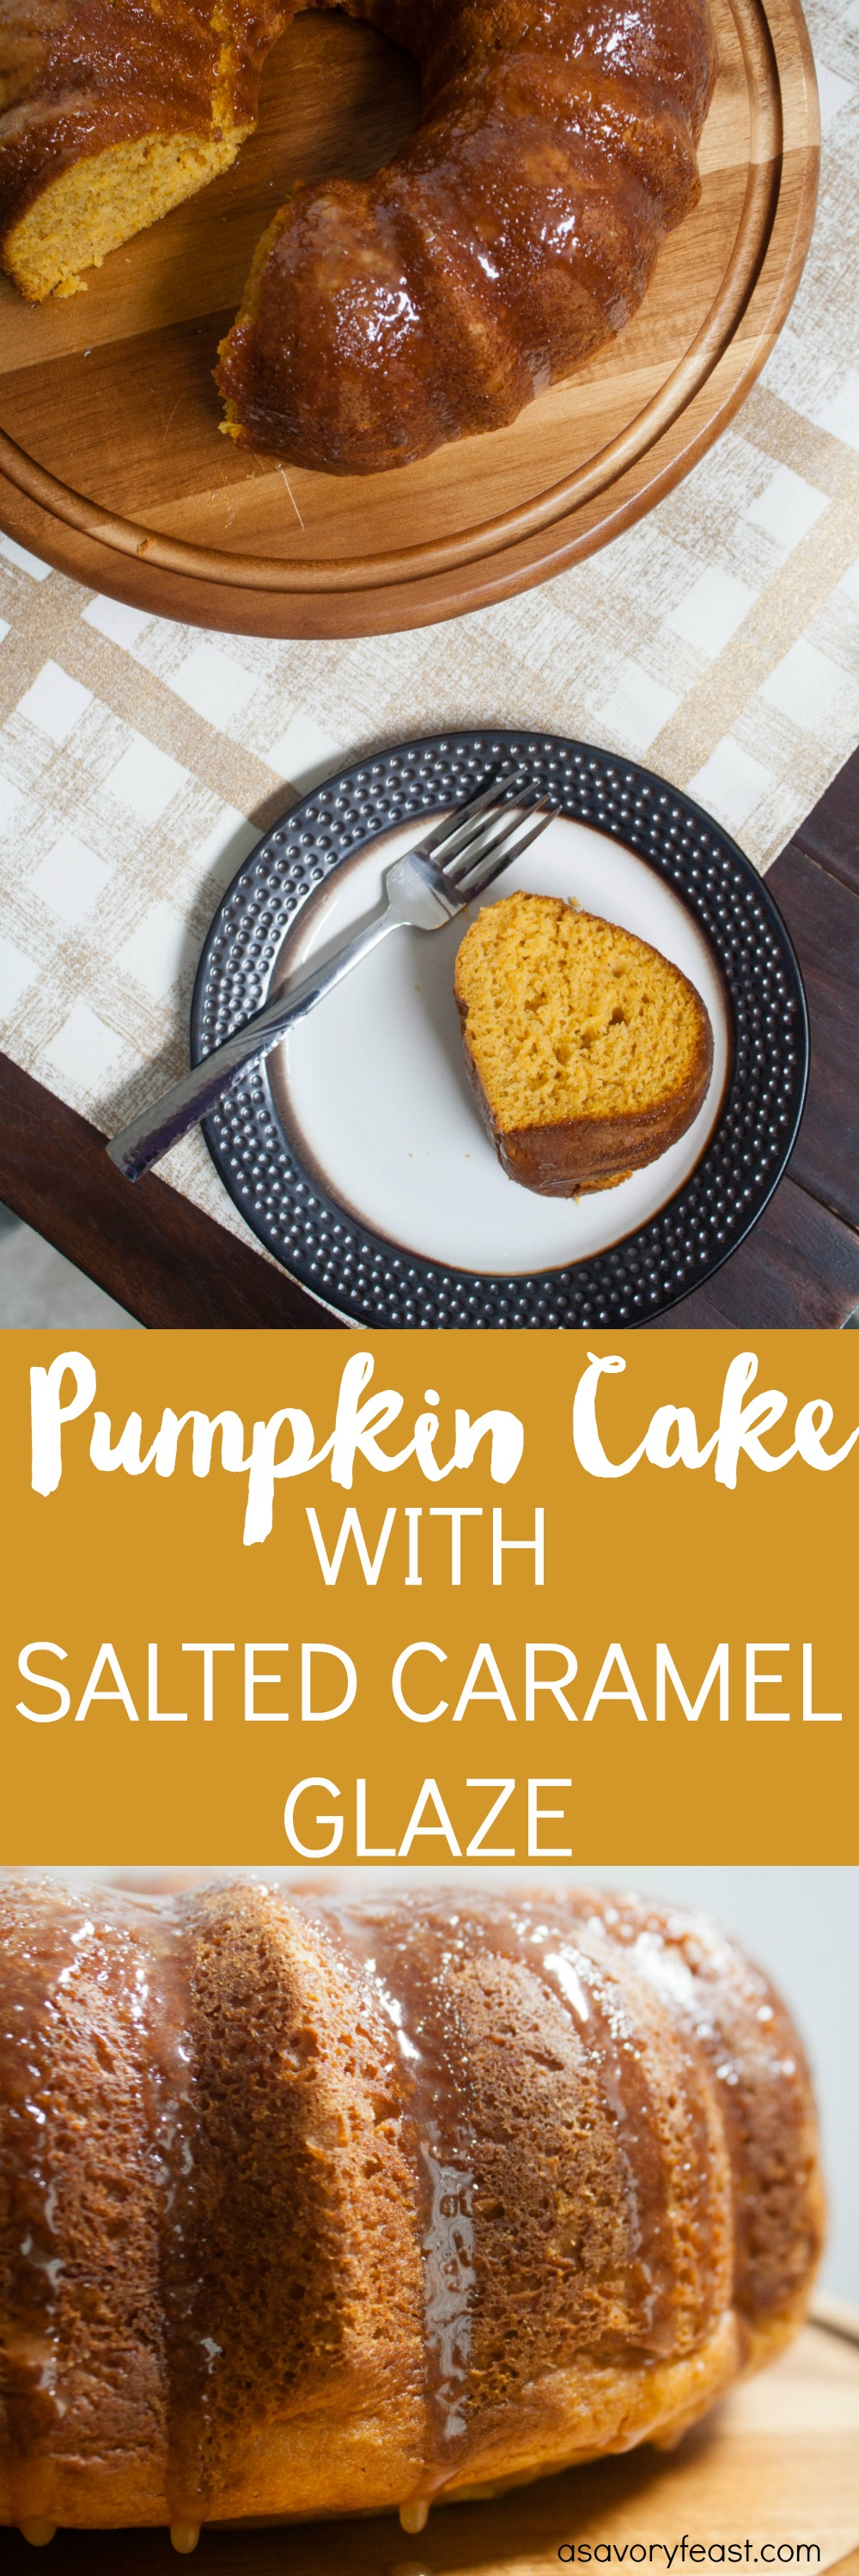 Pumpkin Cake with Salted Caramel Glaze